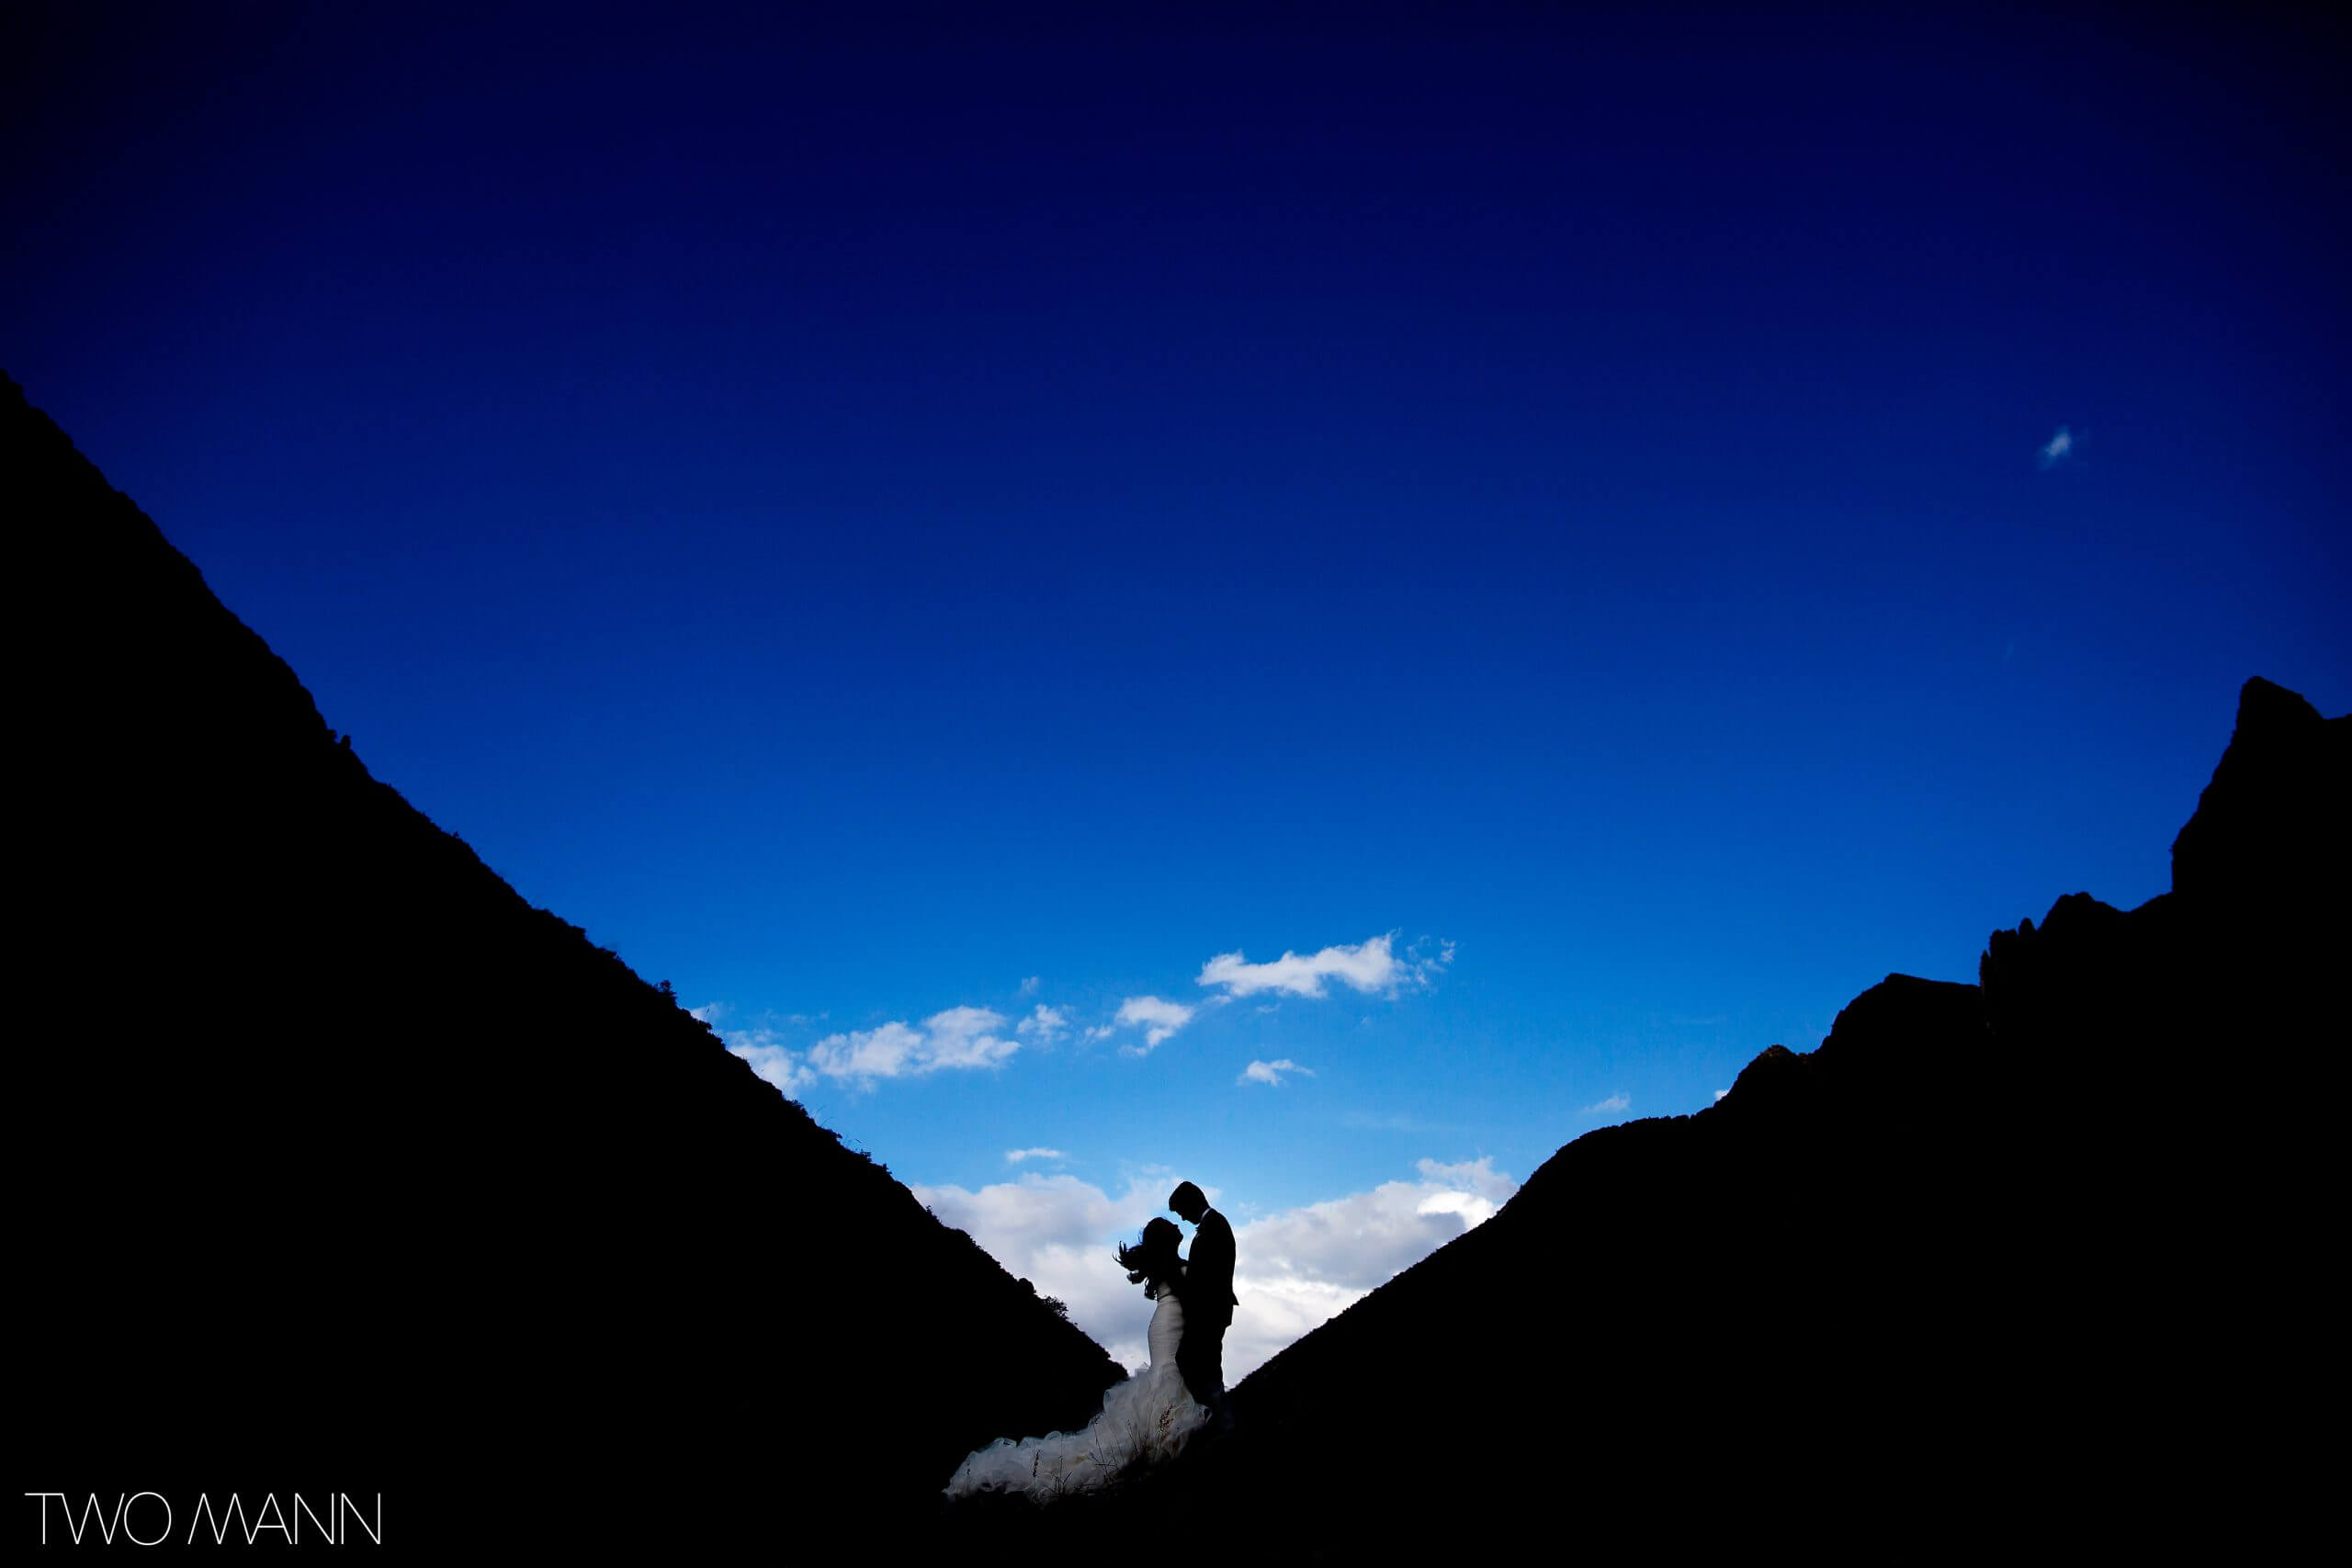 bride and groom embracing in mountains